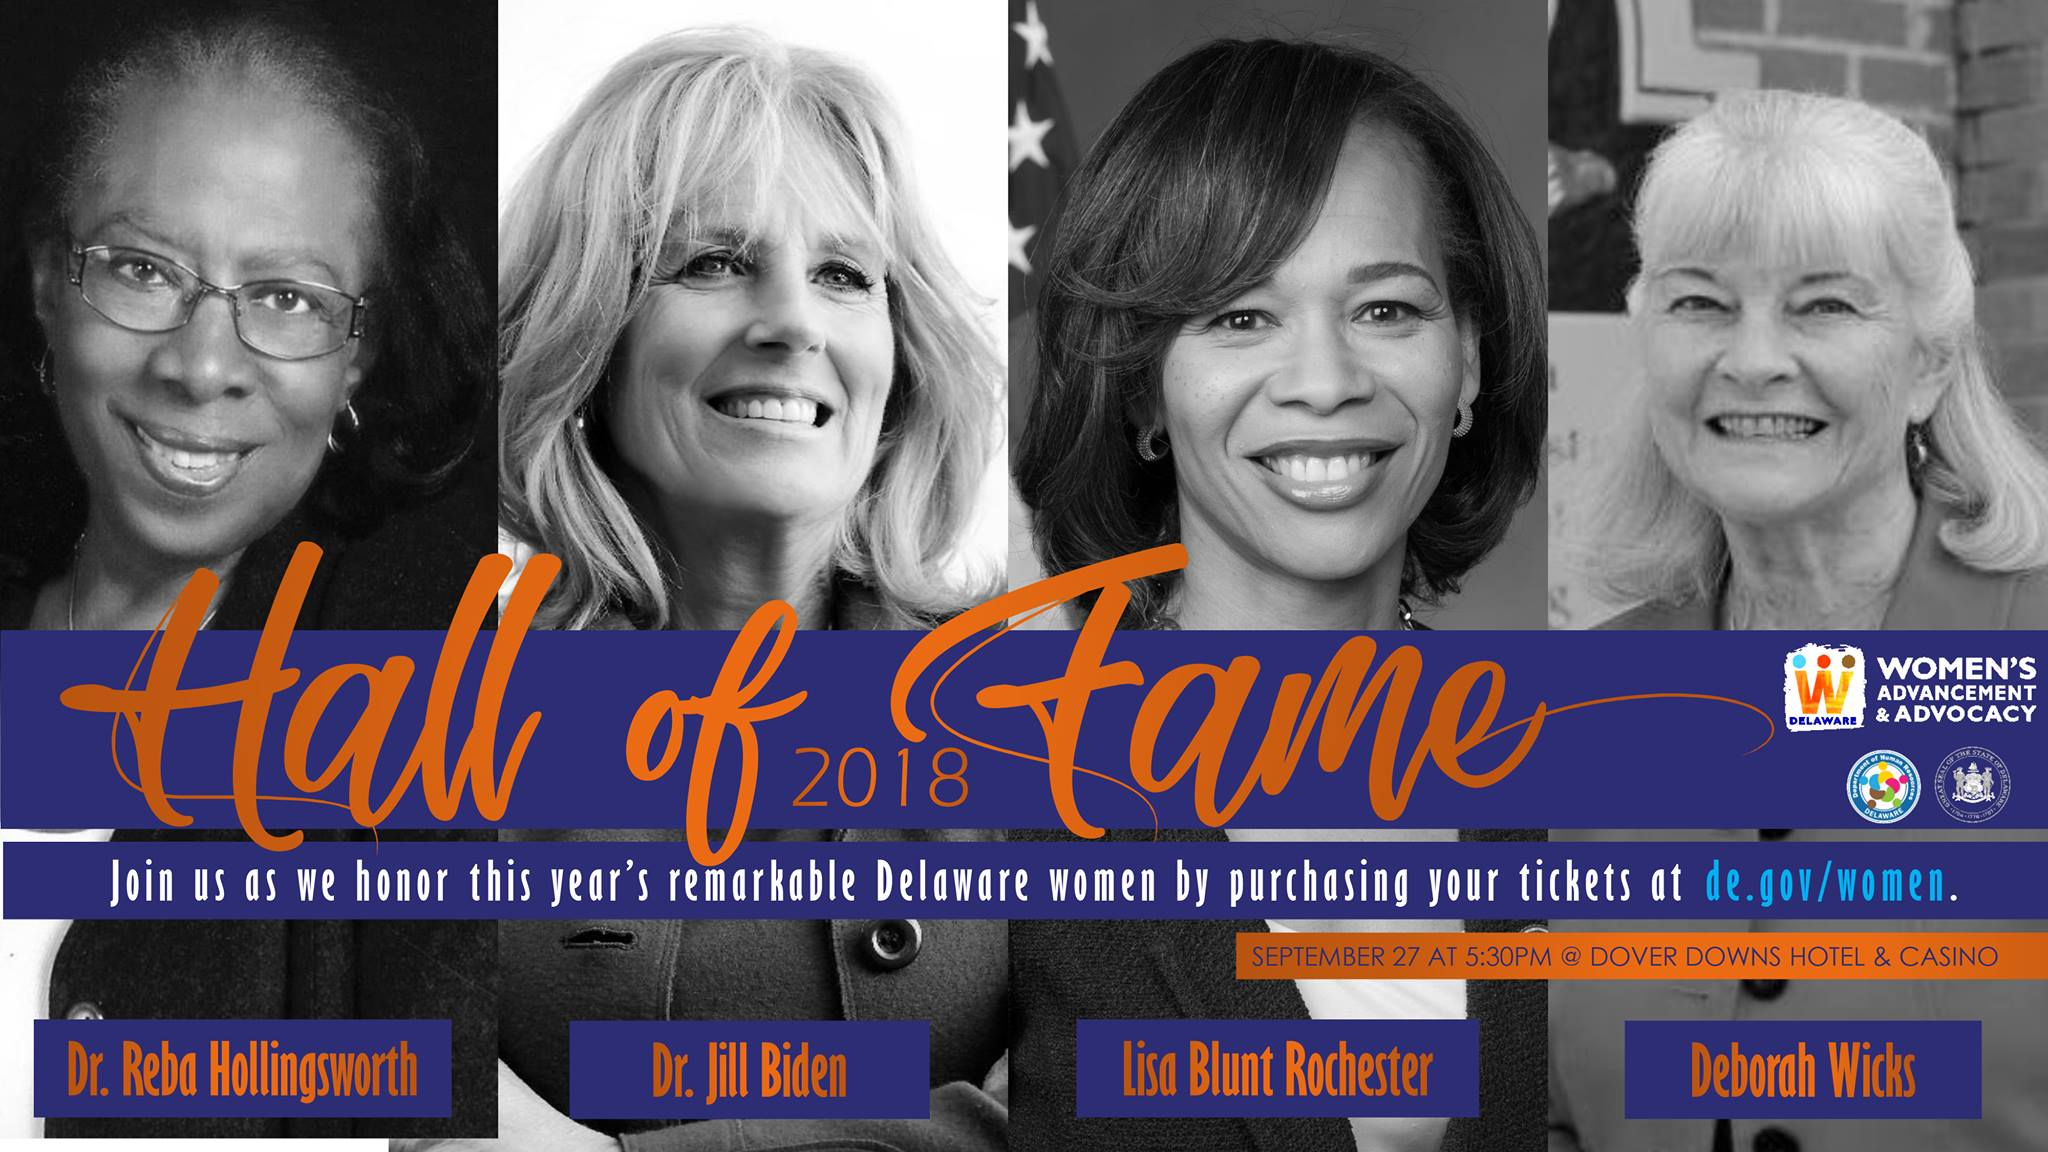 Hall of Fame of Delaware Women 2018 Inductees